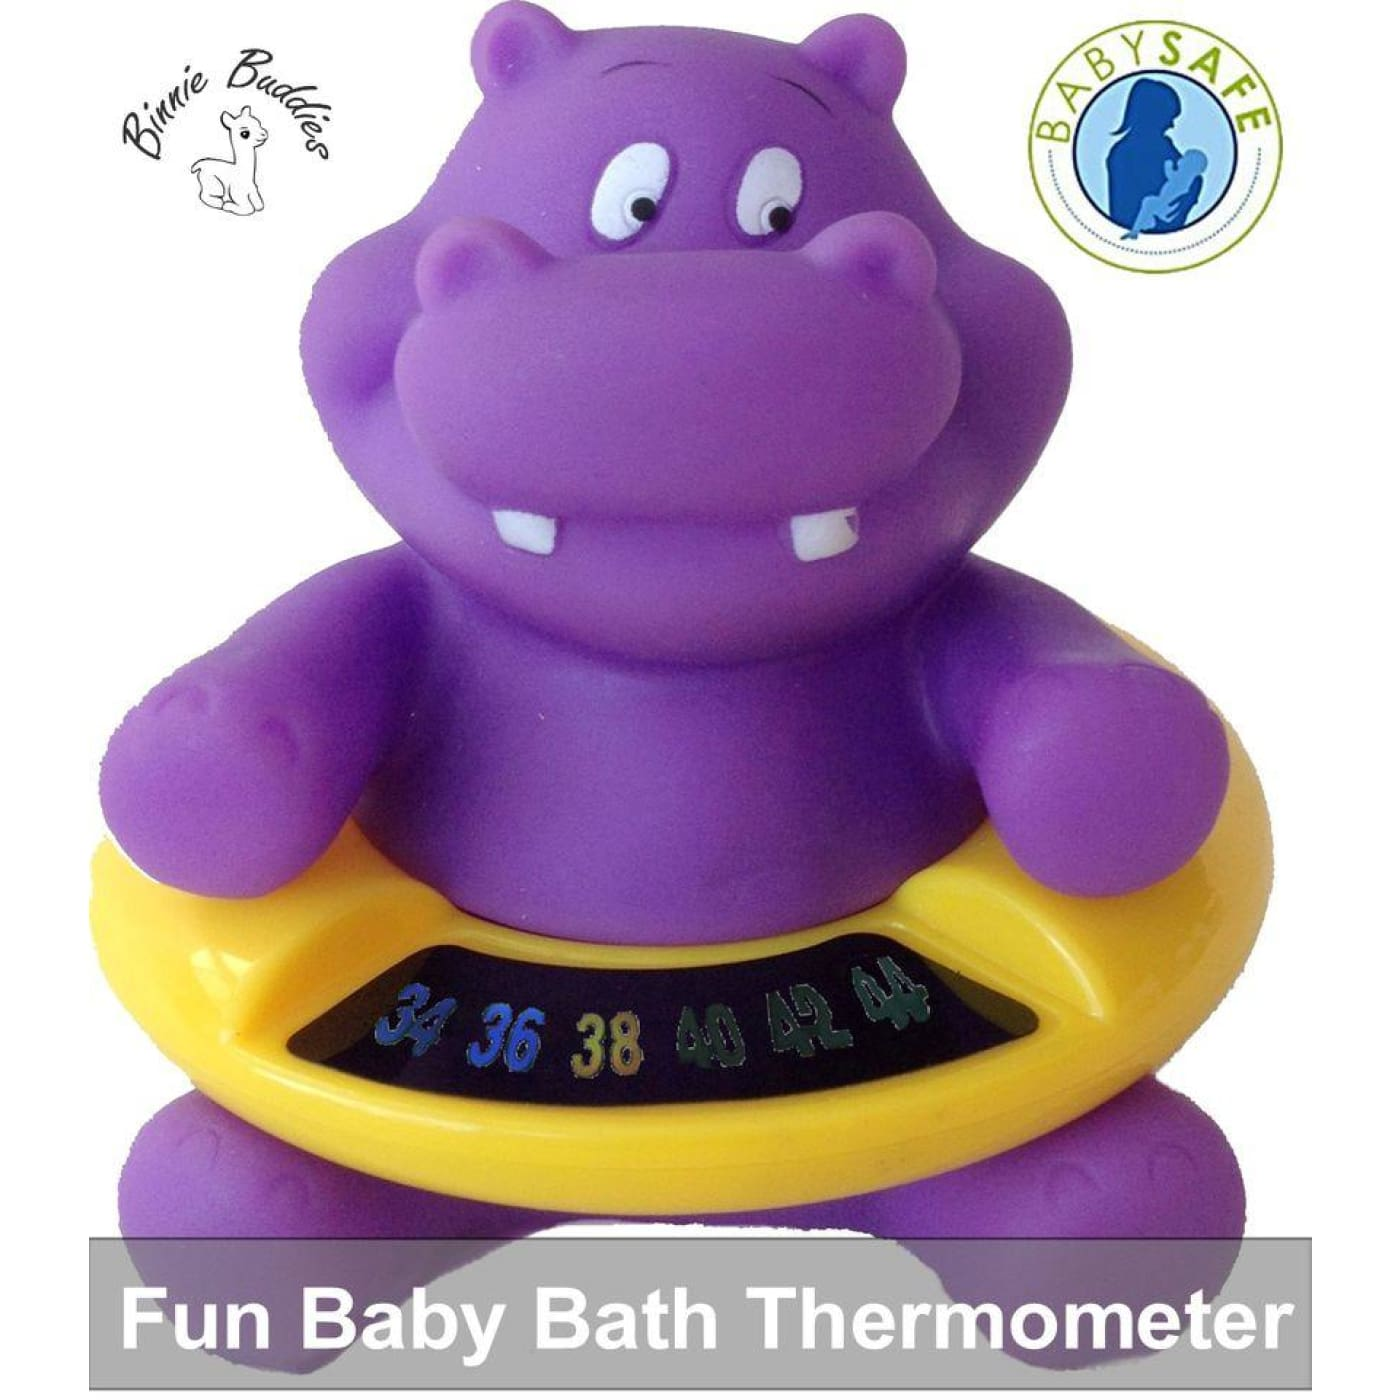 Binnie Bath Thermometer - Hippo - HEALTH & HOME SAFETY - THERMOMETERS/MEDICINAL